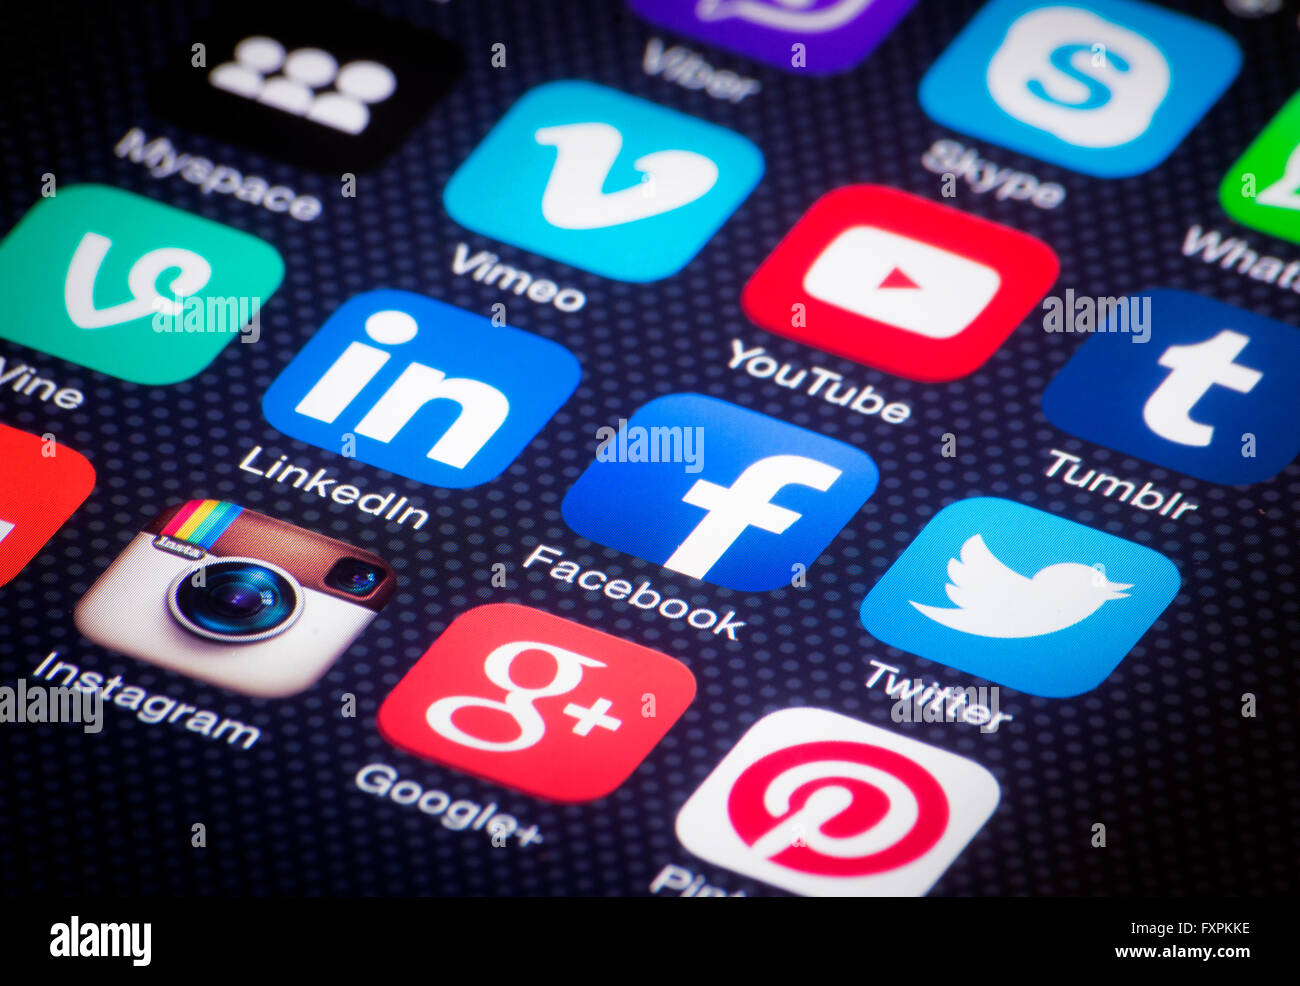 social media icons on smartphone screen - Stock Image